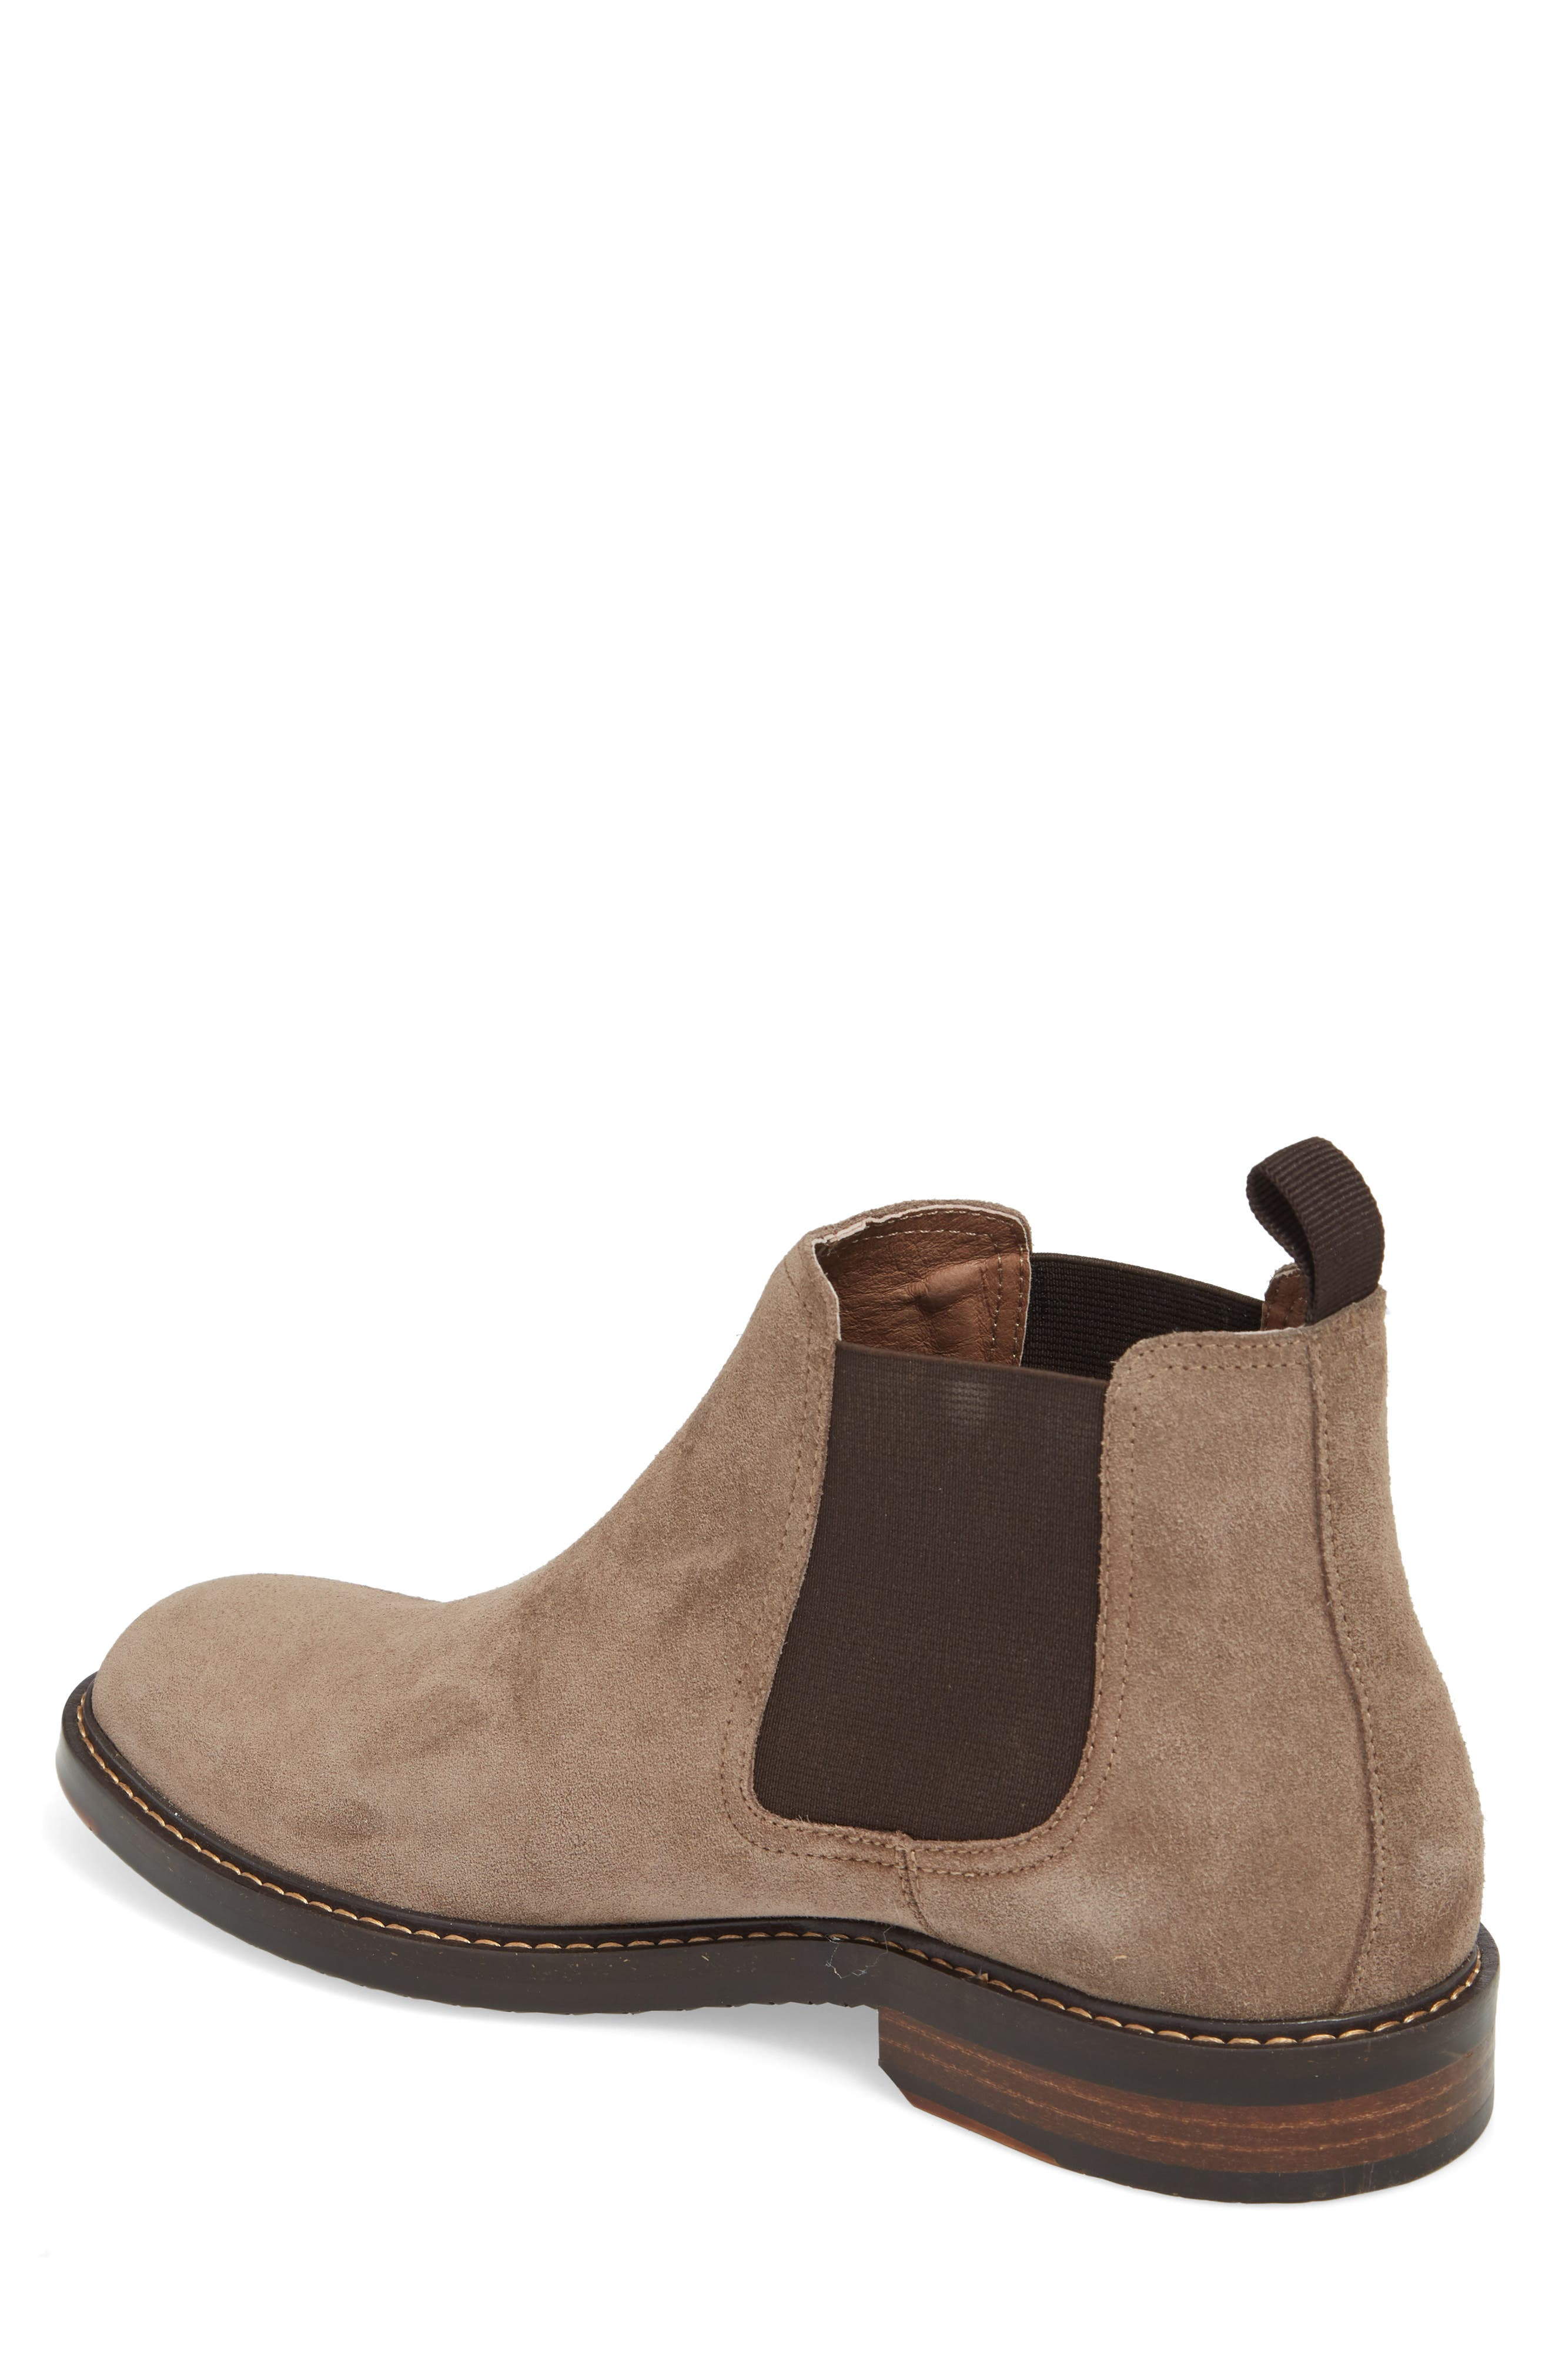 Brooks Chelsea Boot,                             Alternate thumbnail 2, color,                             TAUPE SUEDE